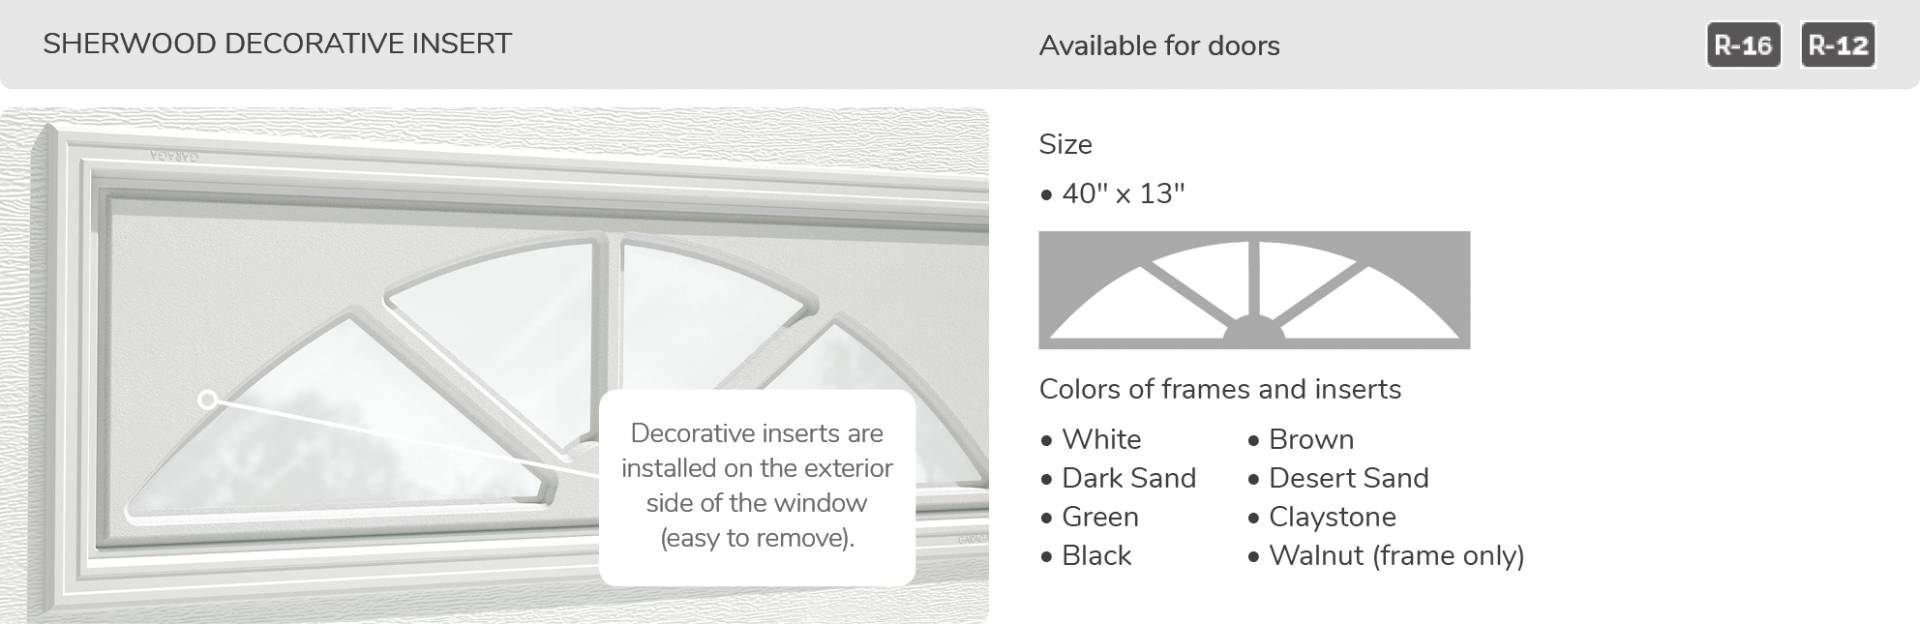 Sherwood Decorative Insert, 40' x 13', available for doors R-16 and R-12